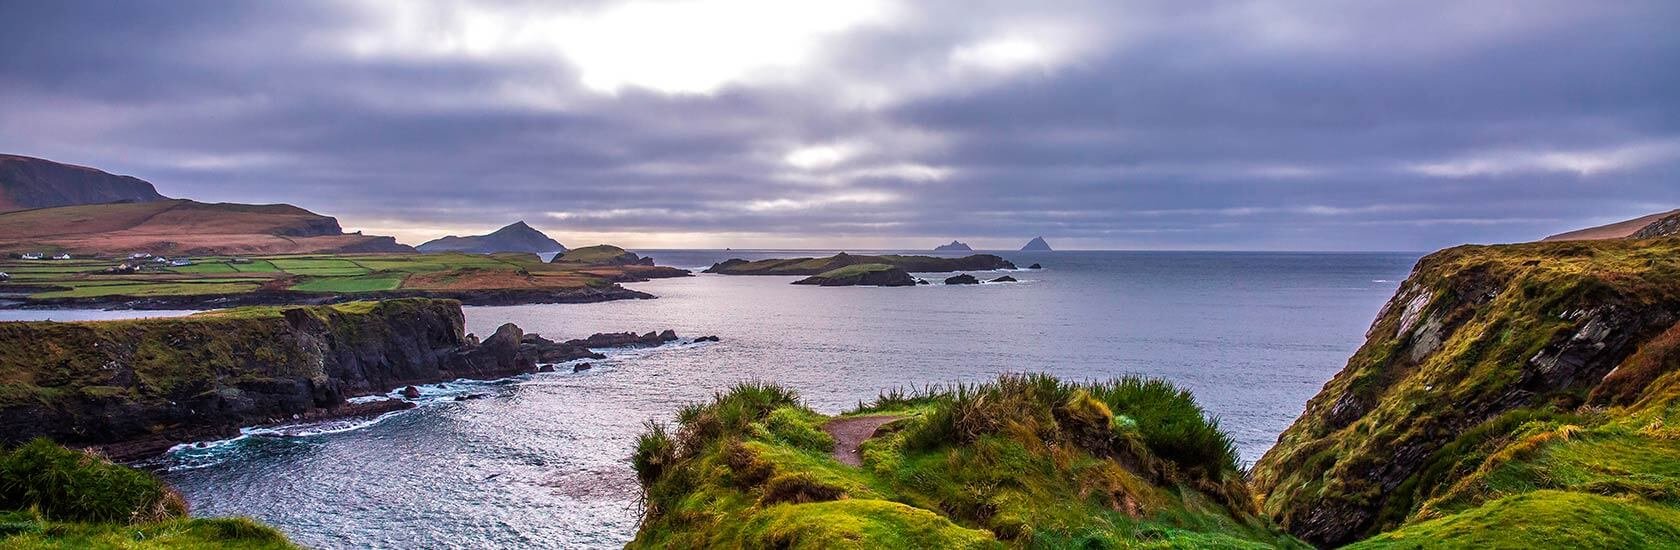 Guided Day Tours Ireland